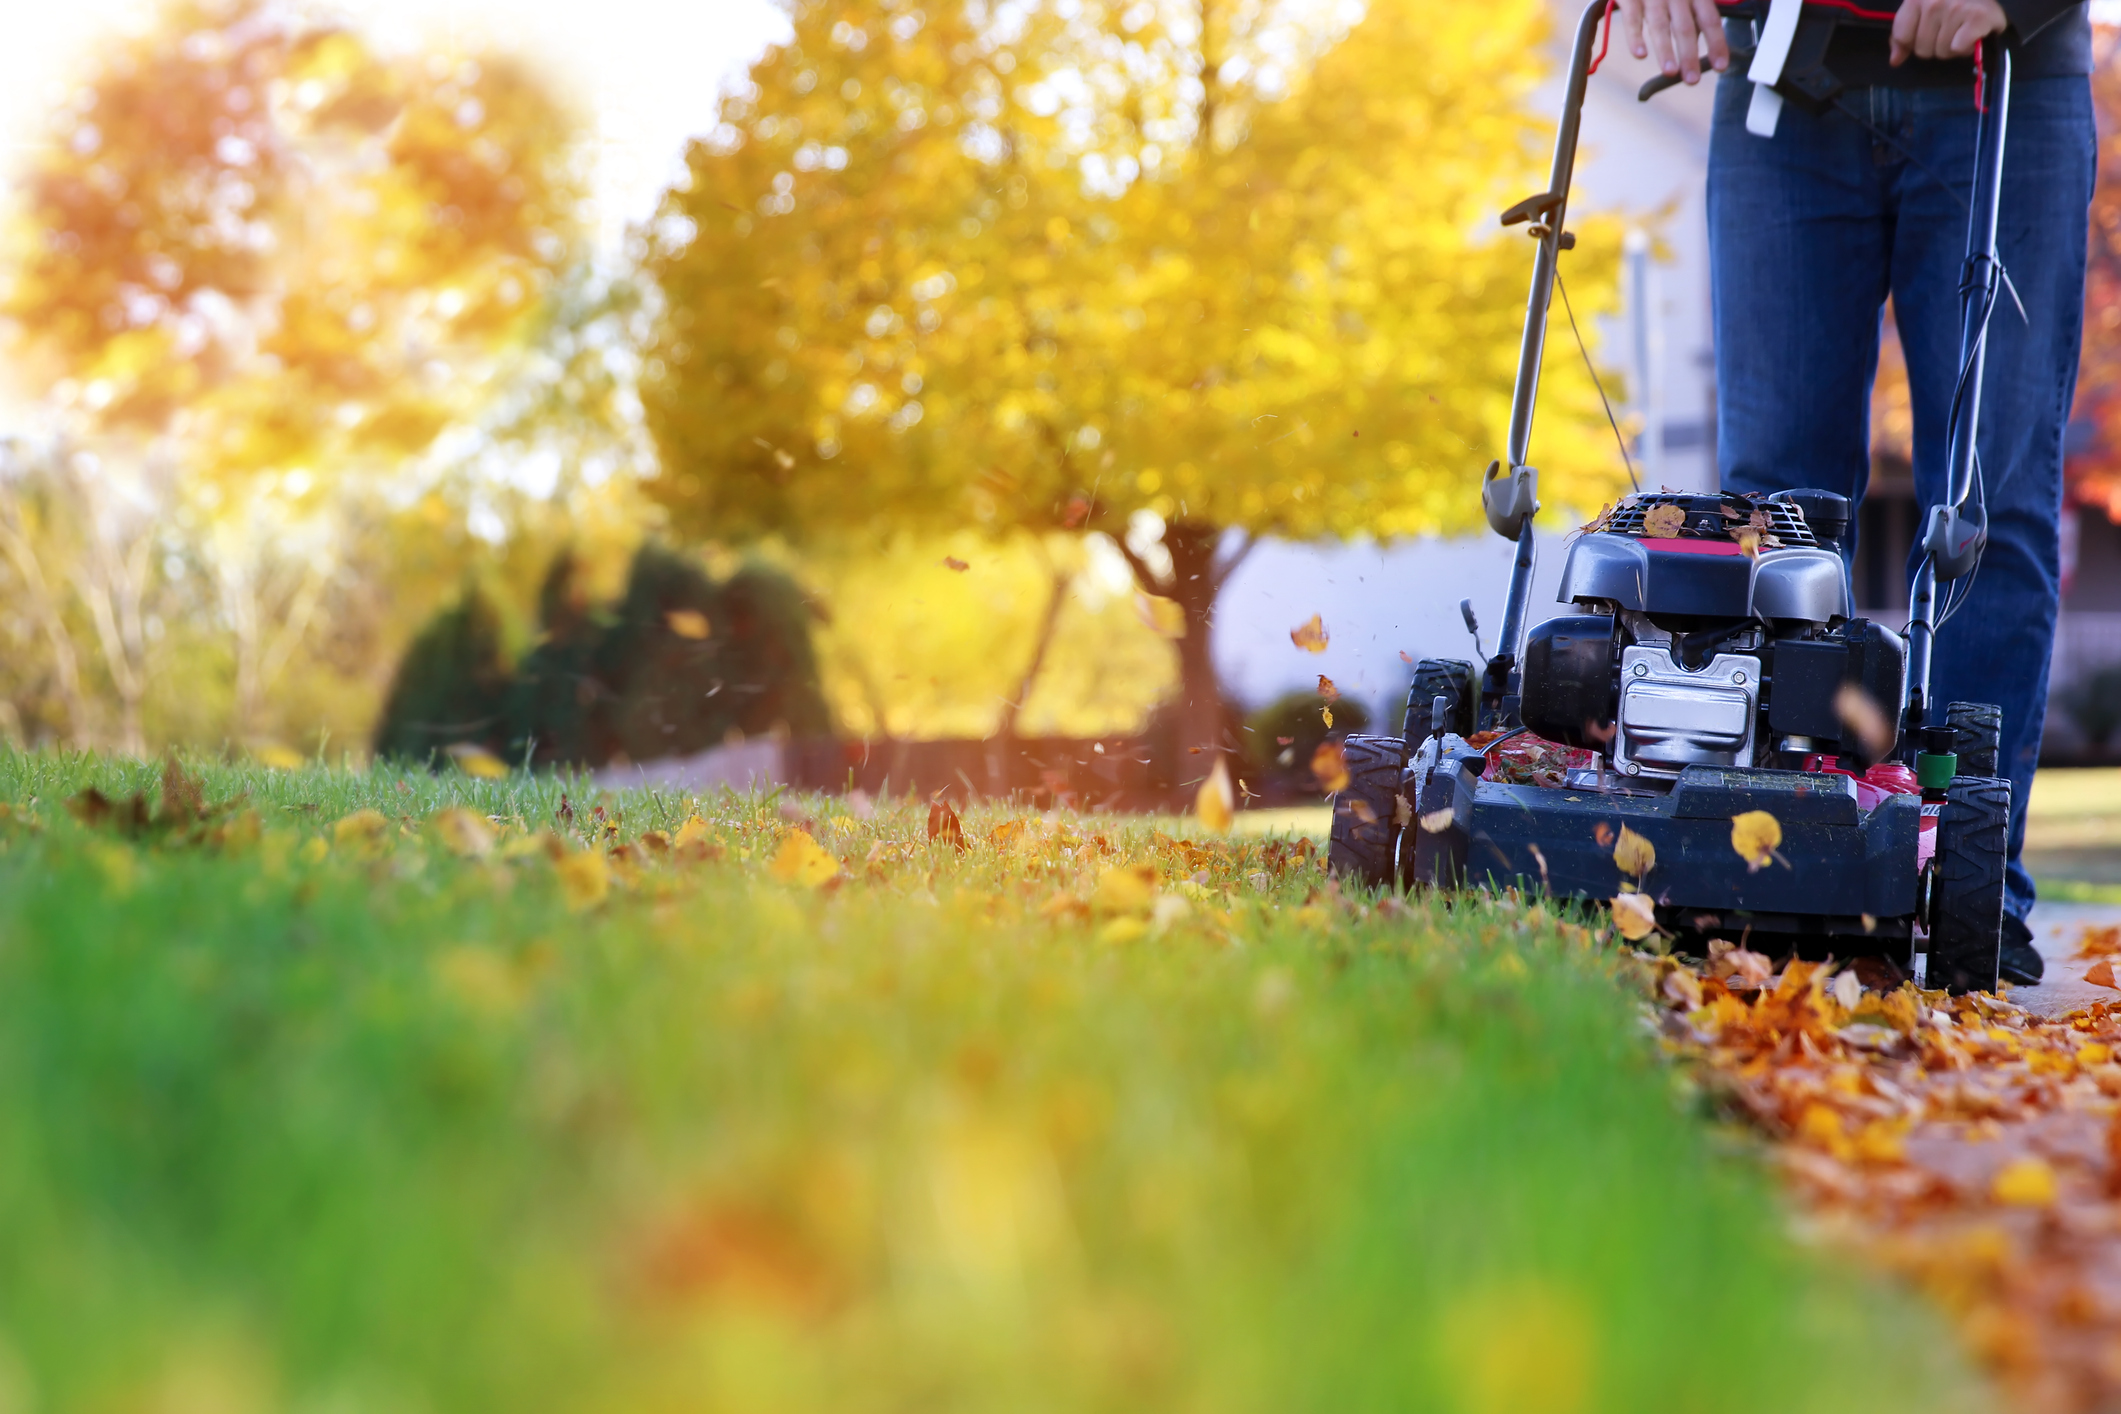 Fall is a great time for lawn care.